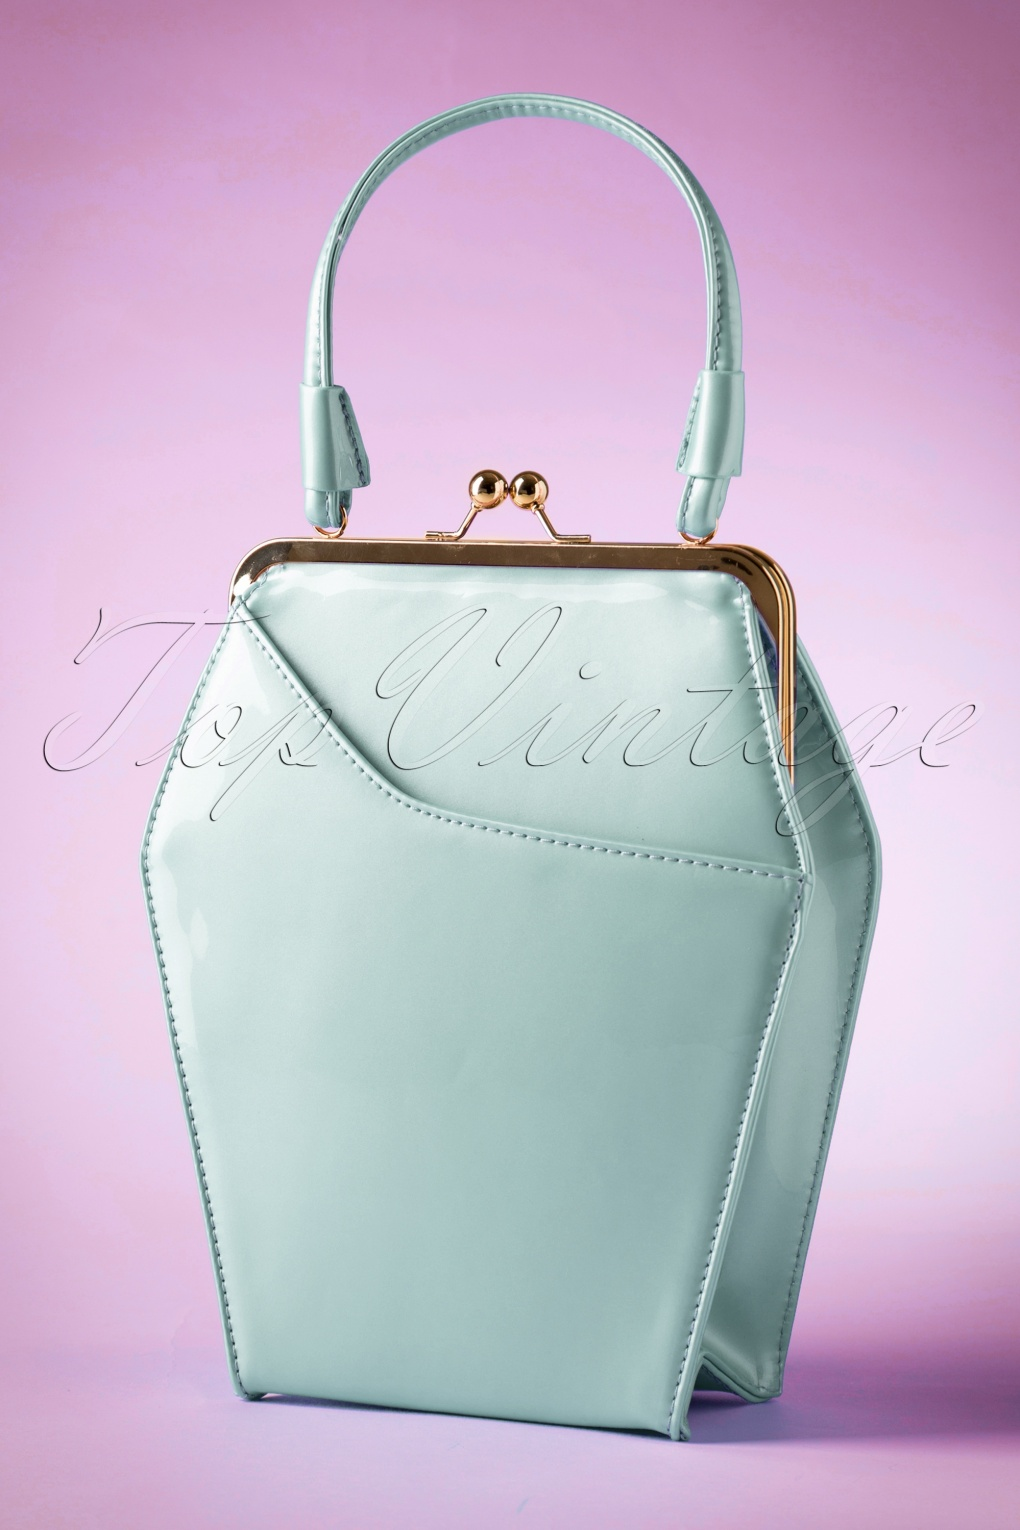 1950s Handbags, Purses, and Evening Bag Styles 50s To Die For Handbag In Ice Blue £64.49 AT vintagedancer.com